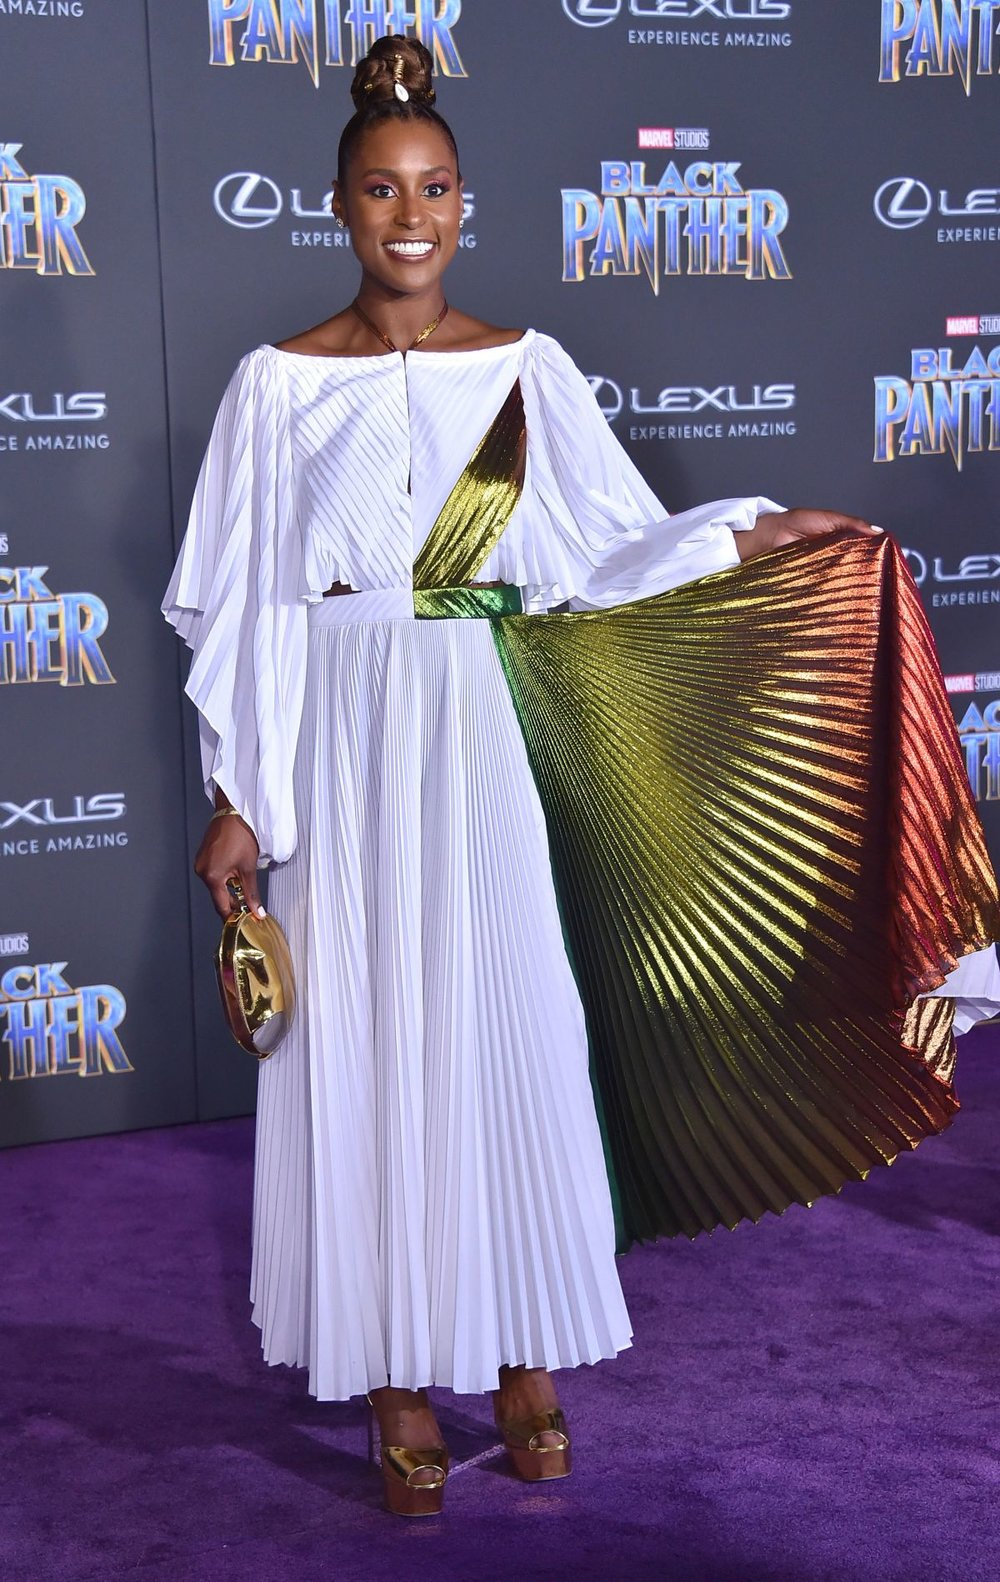 issa-rae-at-black-panther-premiere-in-hollywood-01-29-2018-1.jpg